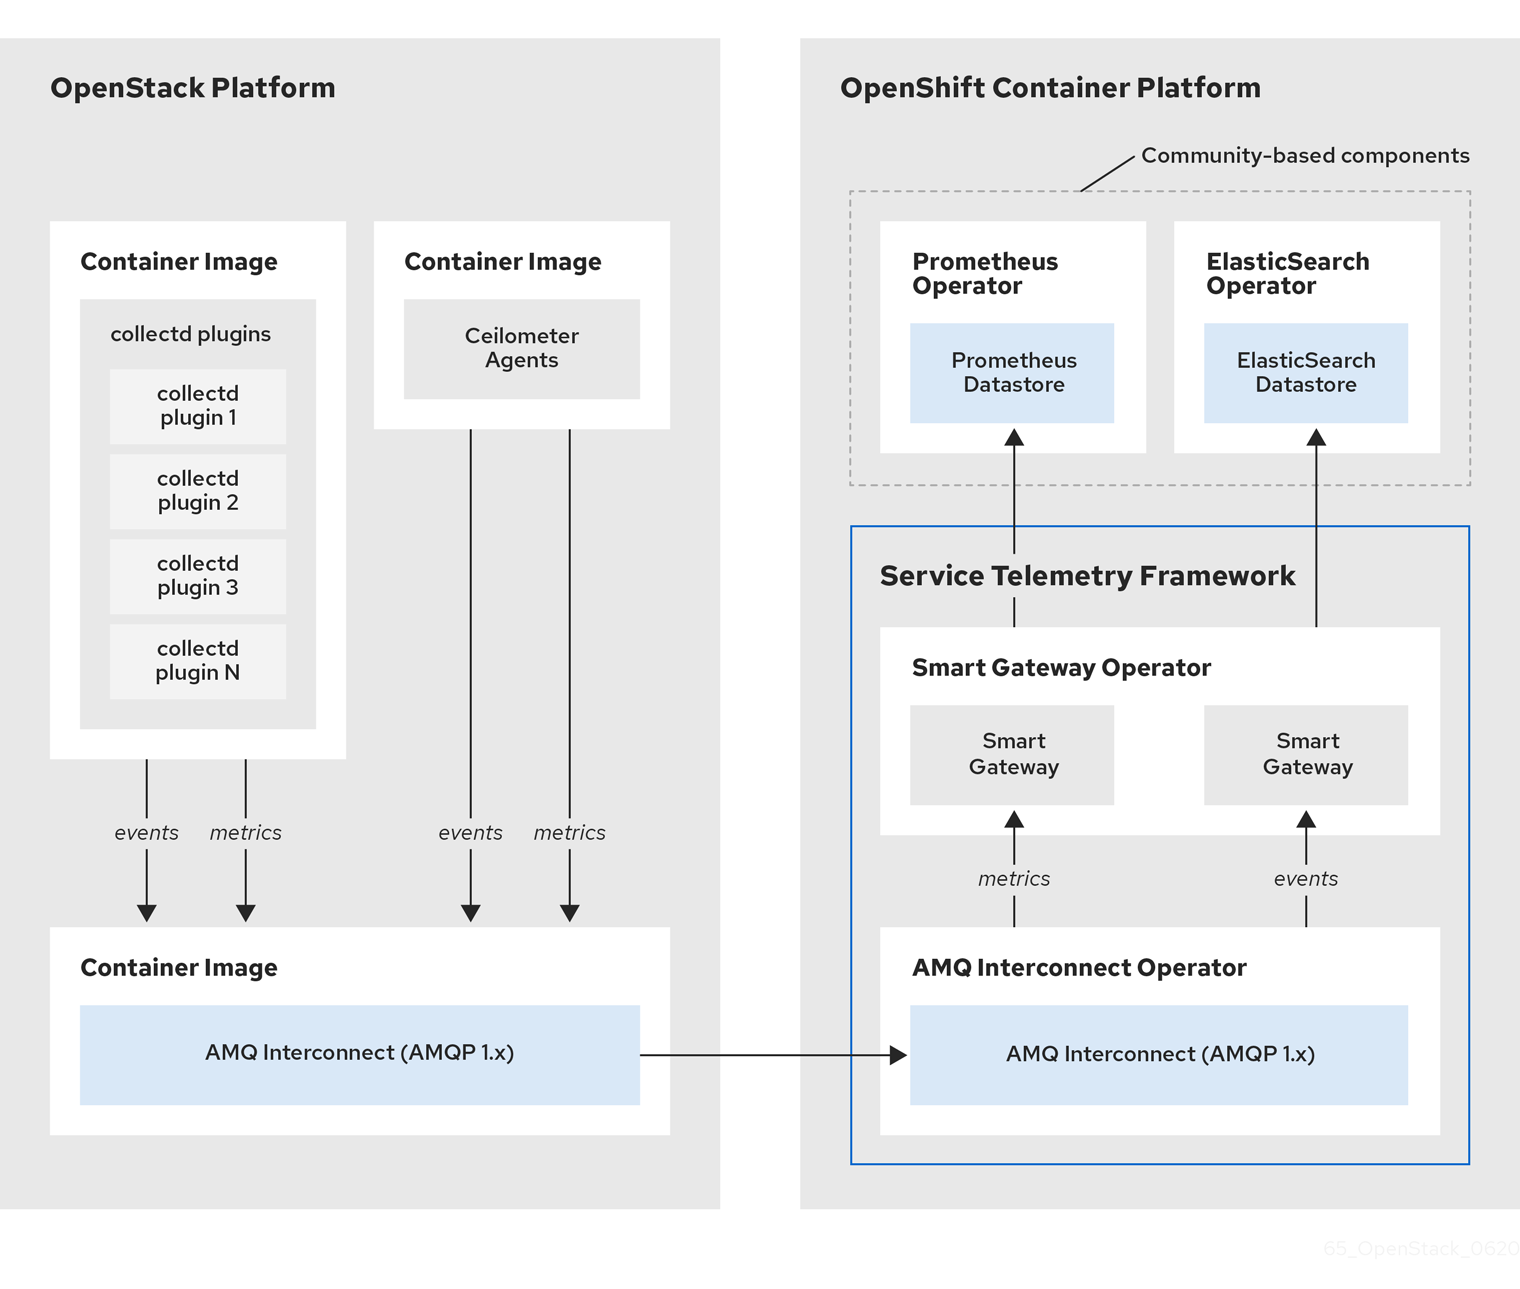 Service Telemetry Framework architecture overview